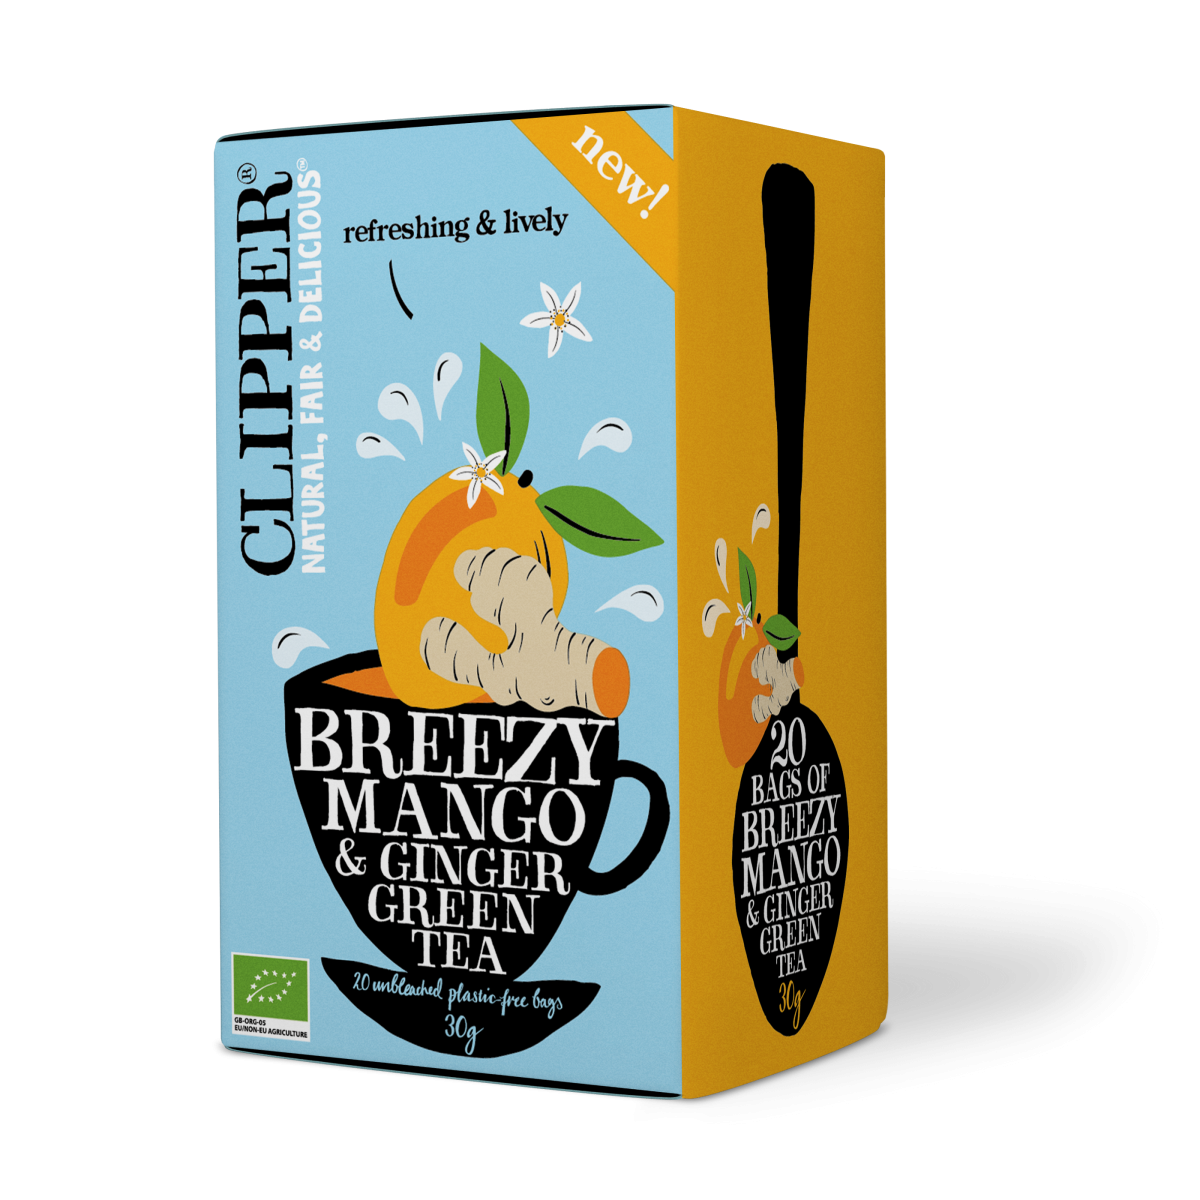 Breezy Mango Ginger